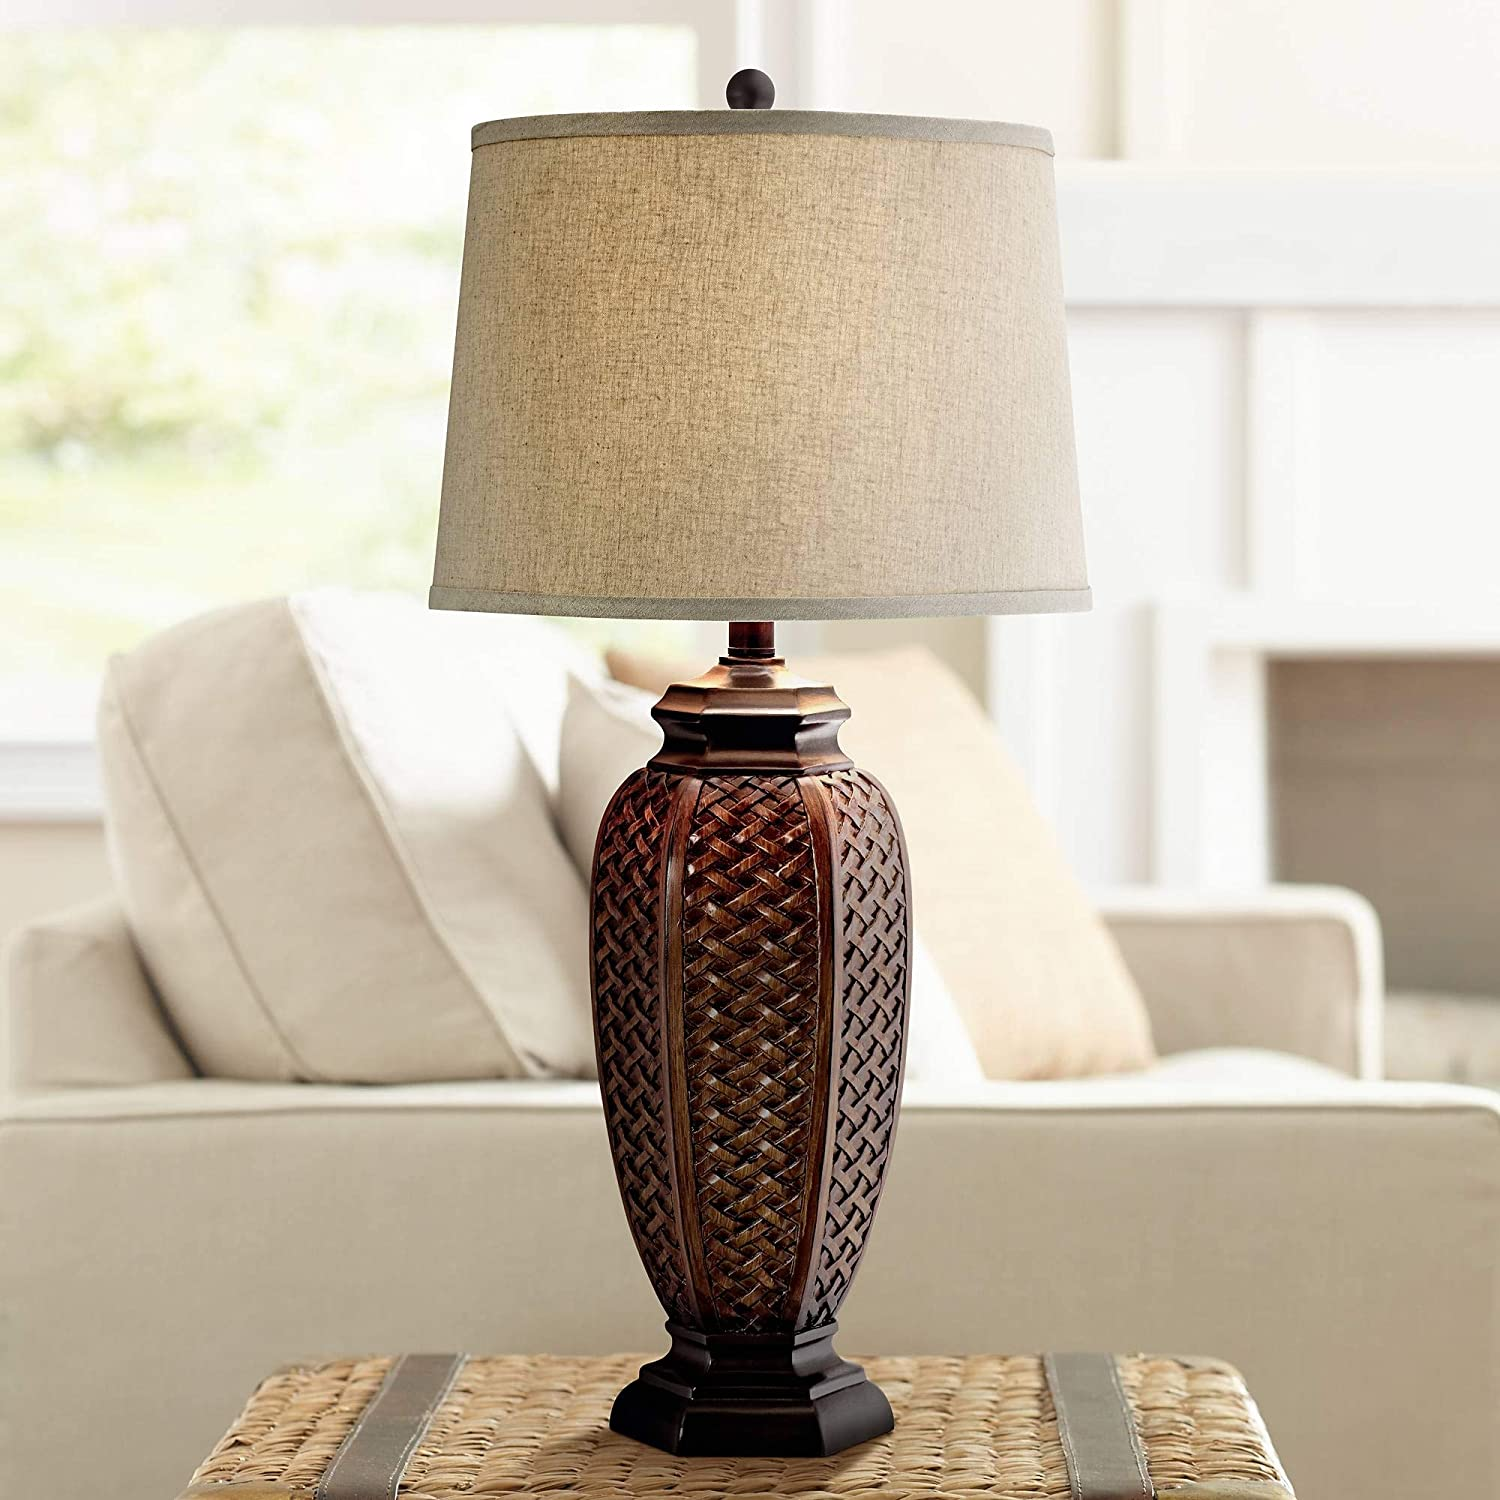 Country Cottage Tropical Style Table Lamp Brown Woven Wicker Pattern Beige  Linen Drum Shade Decor for Living Room Bedroom House Home Dining Office ...